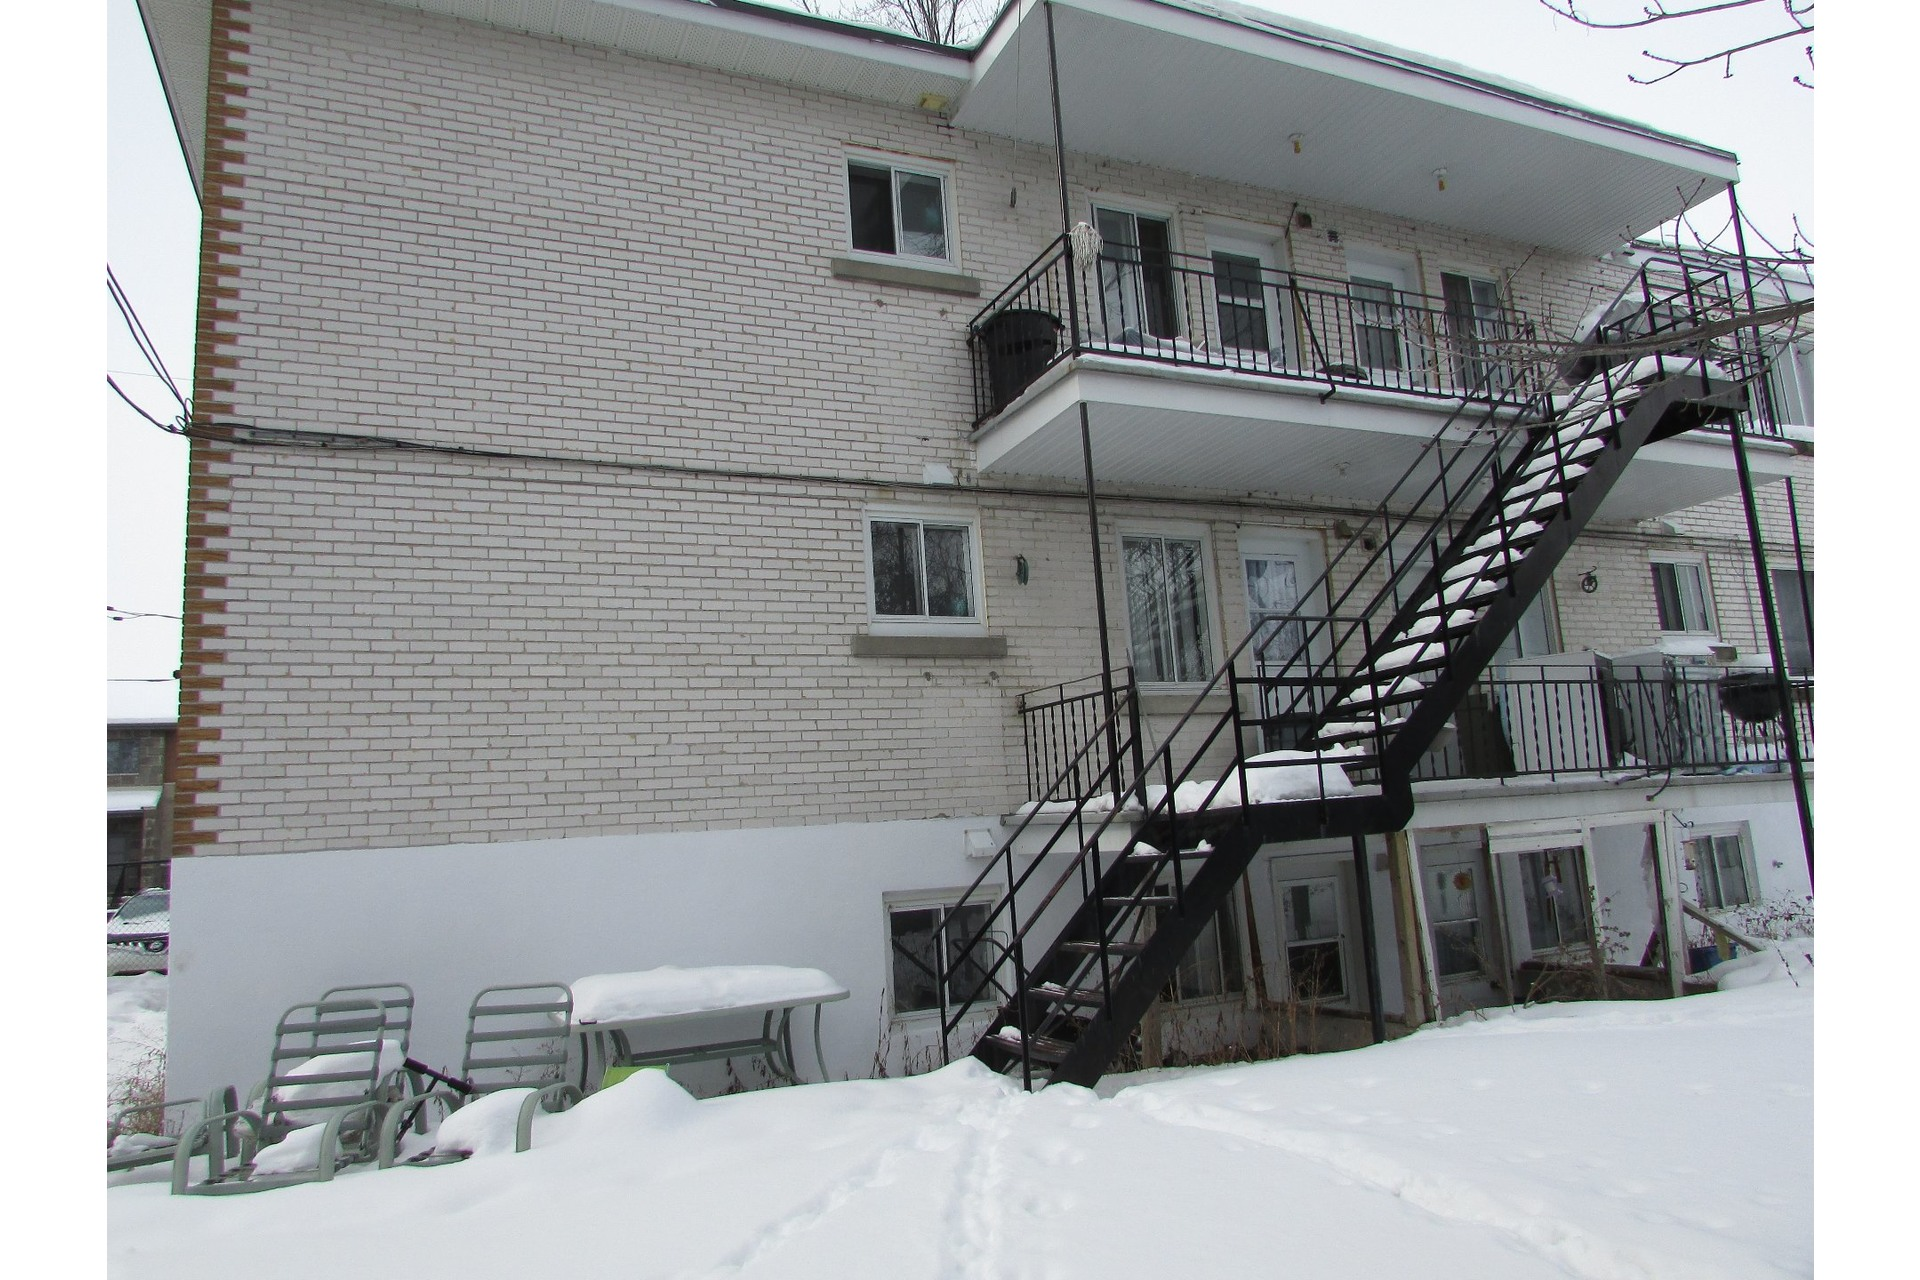 image 3 - Income property For sale Duvernay Laval  - 5 rooms